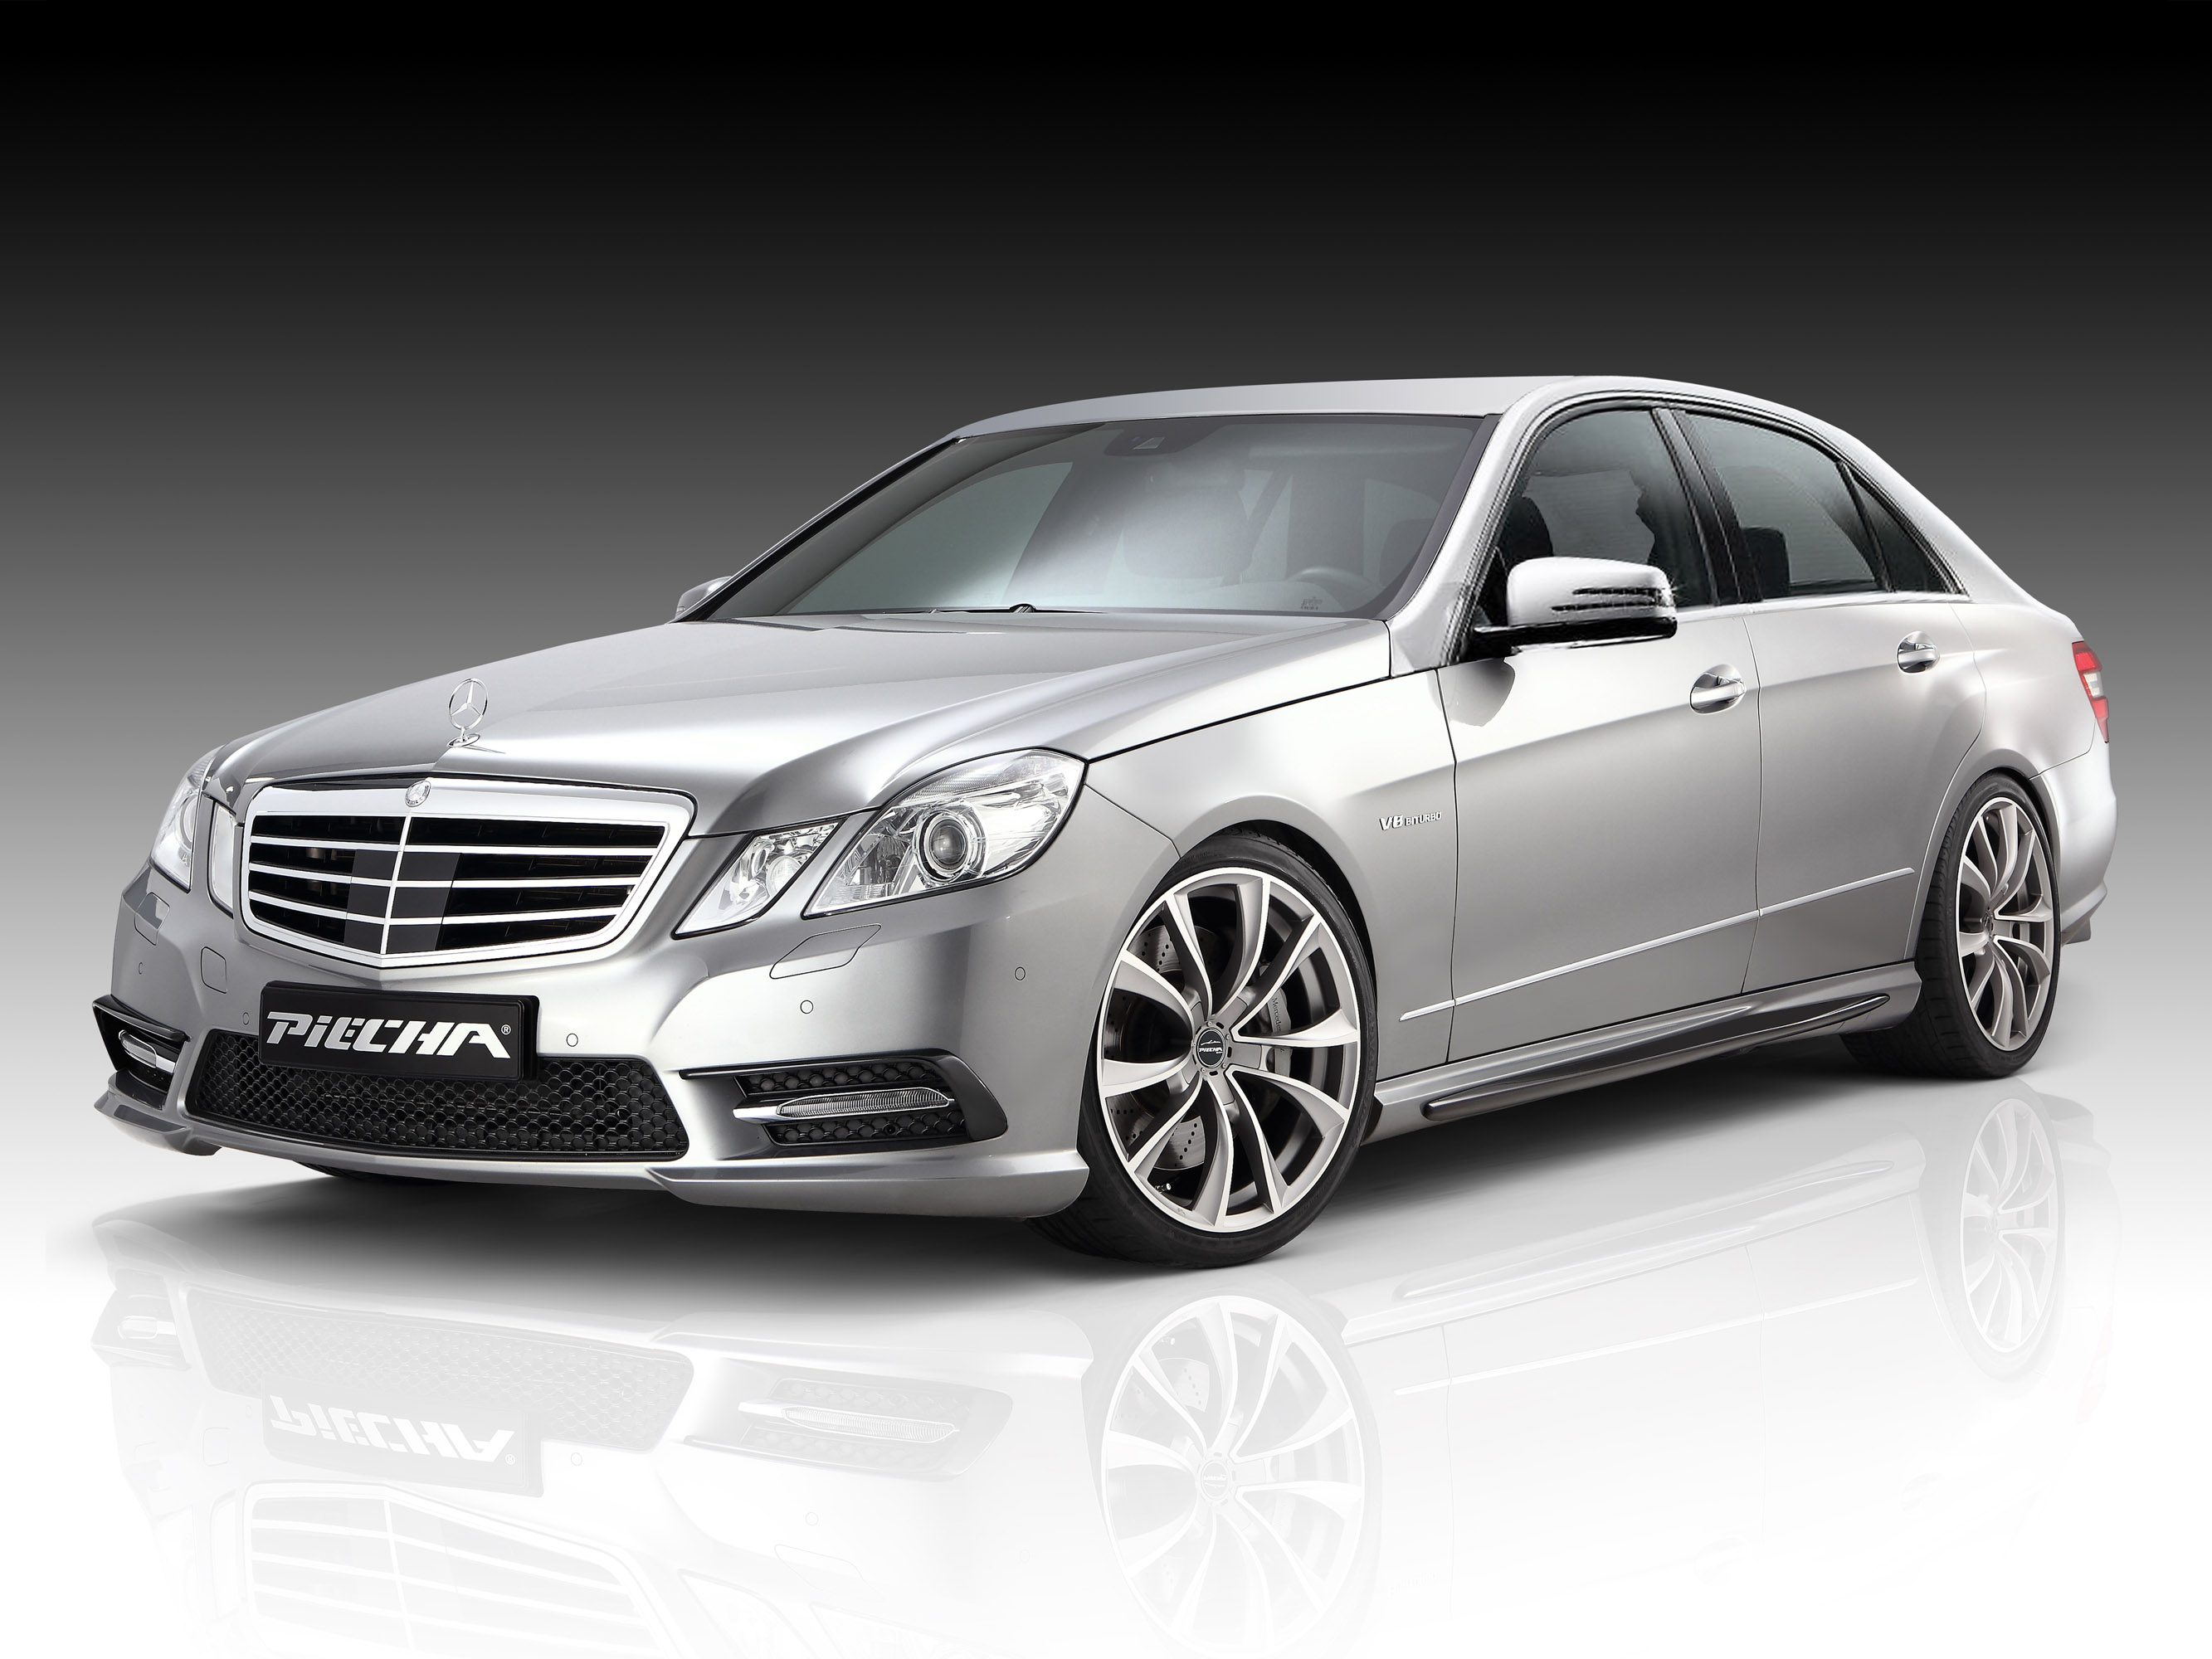 piecha design and jms introduce upgrade for mercedes benz e class w212. Black Bedroom Furniture Sets. Home Design Ideas